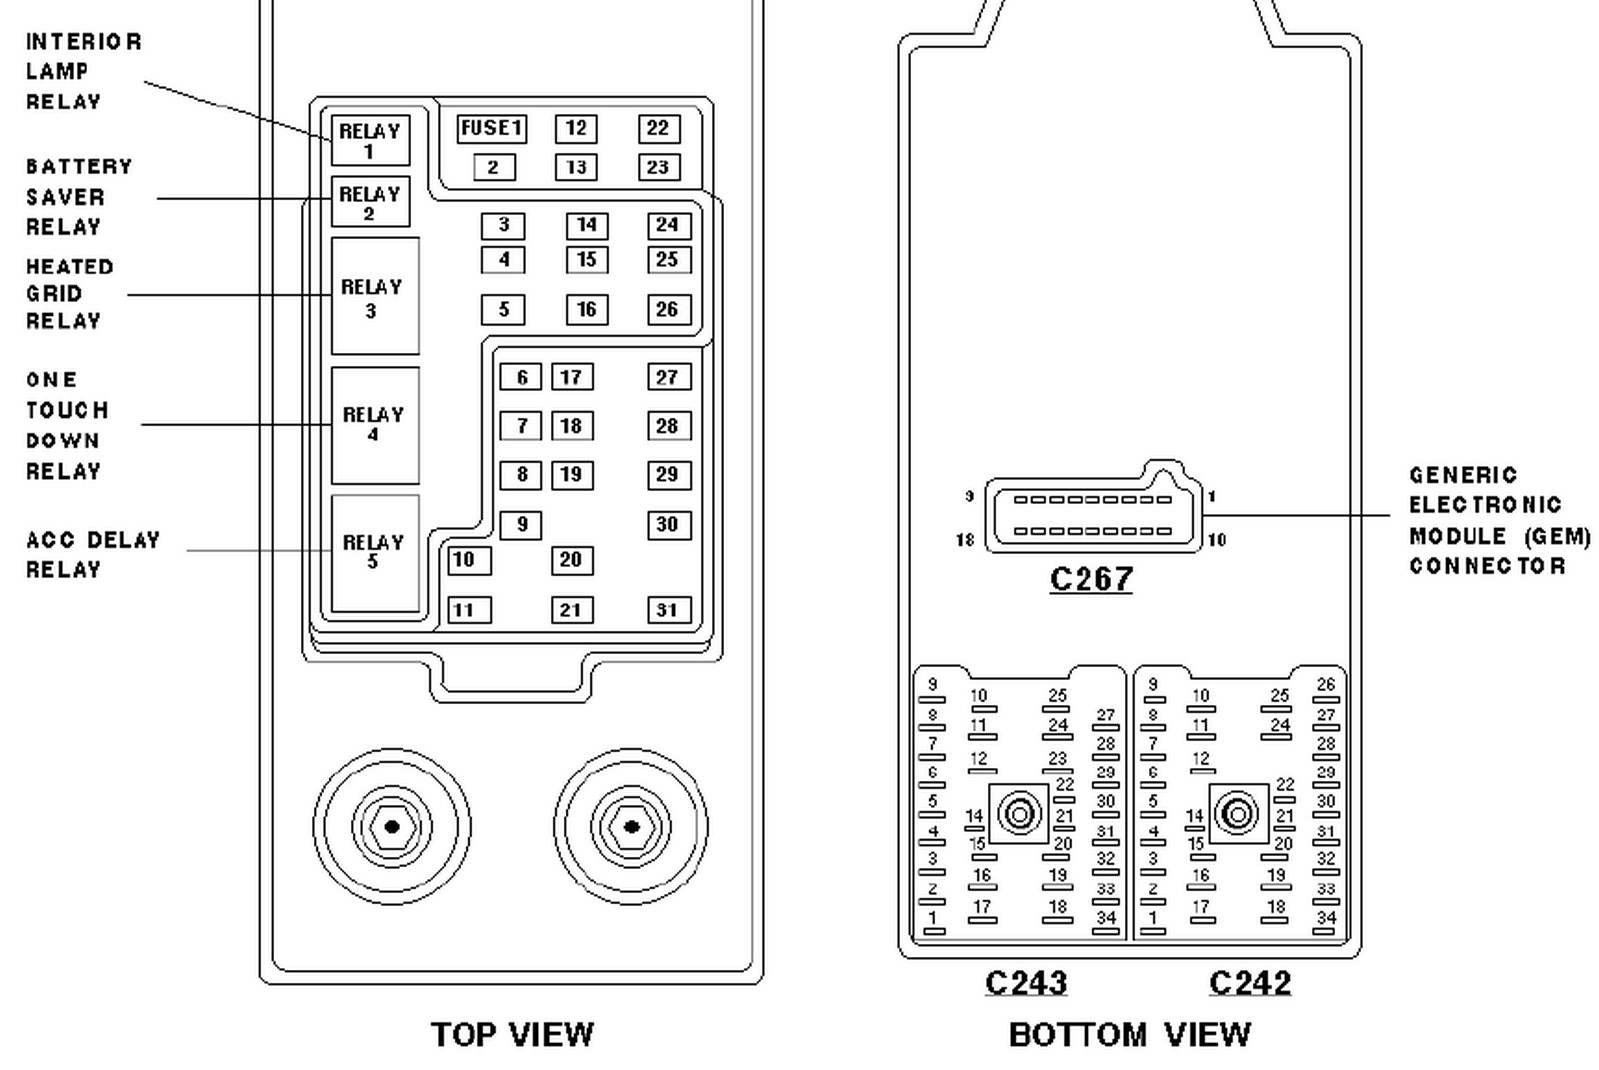 F750 Fuse Box Layout Wiring Diagram 2002 Ford F150 Boxes F 750 Library1997 Expedition Image Details